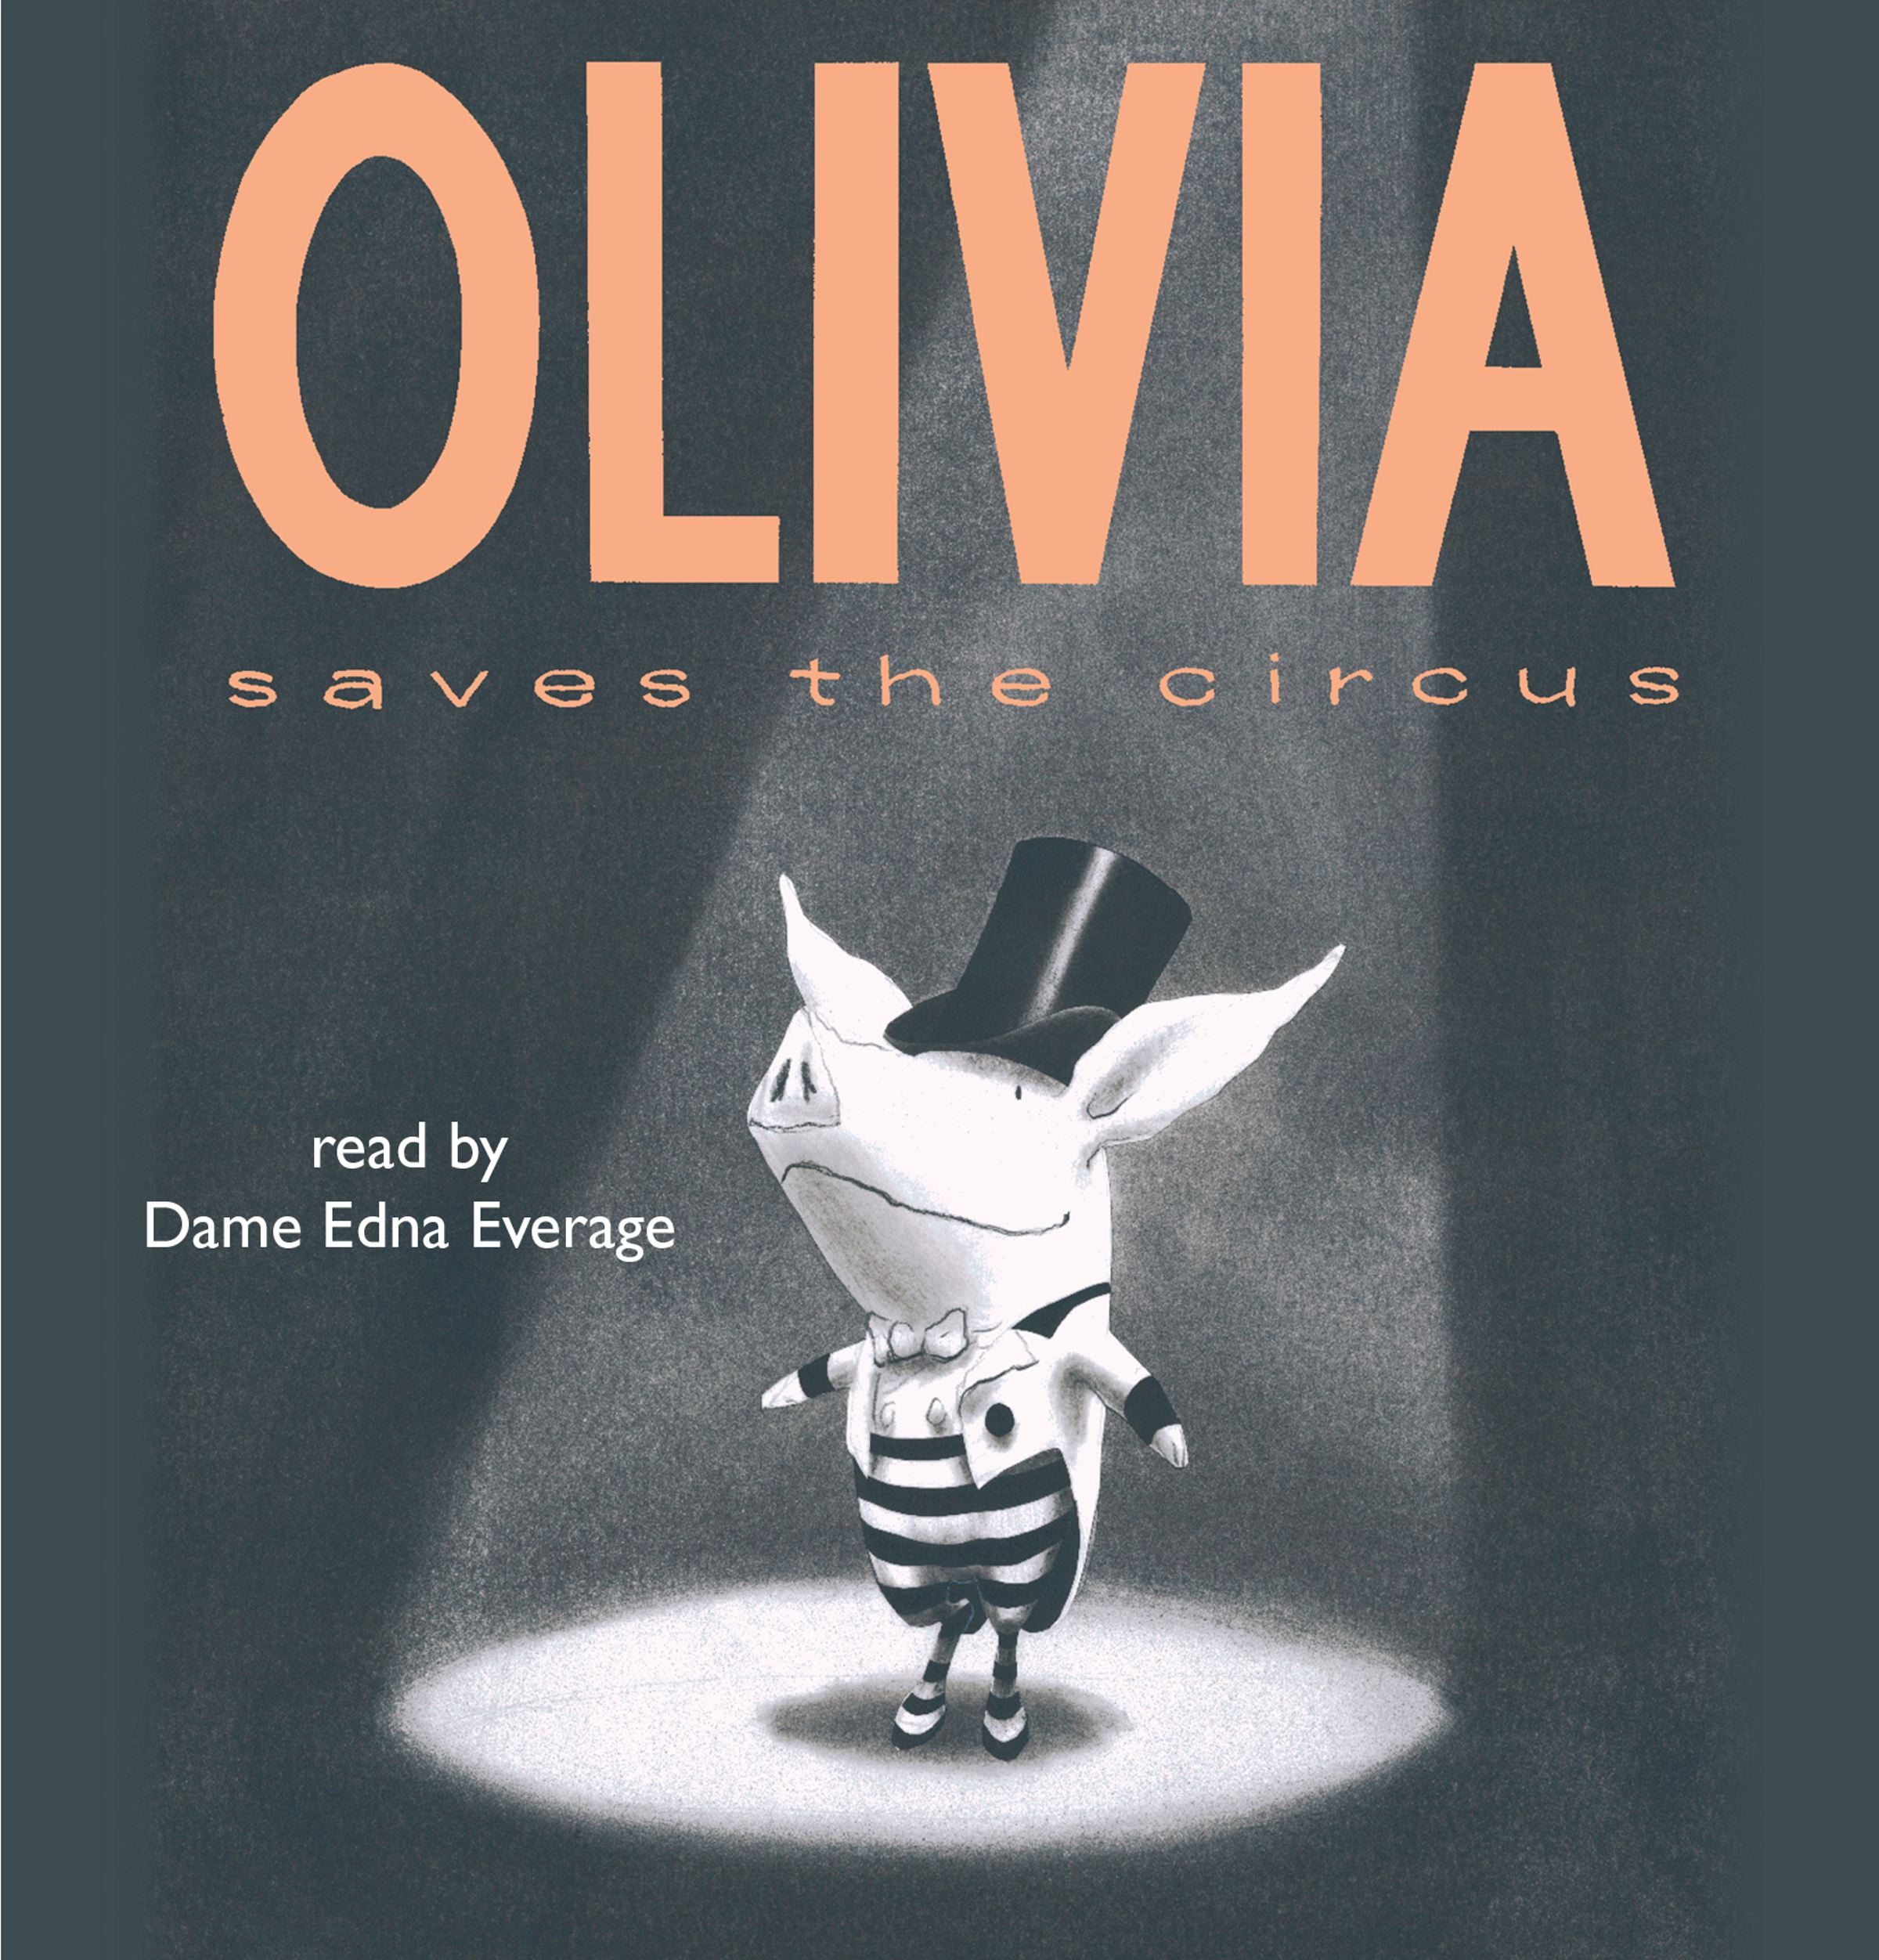 Olivia saves the circus 9780743574778 hr